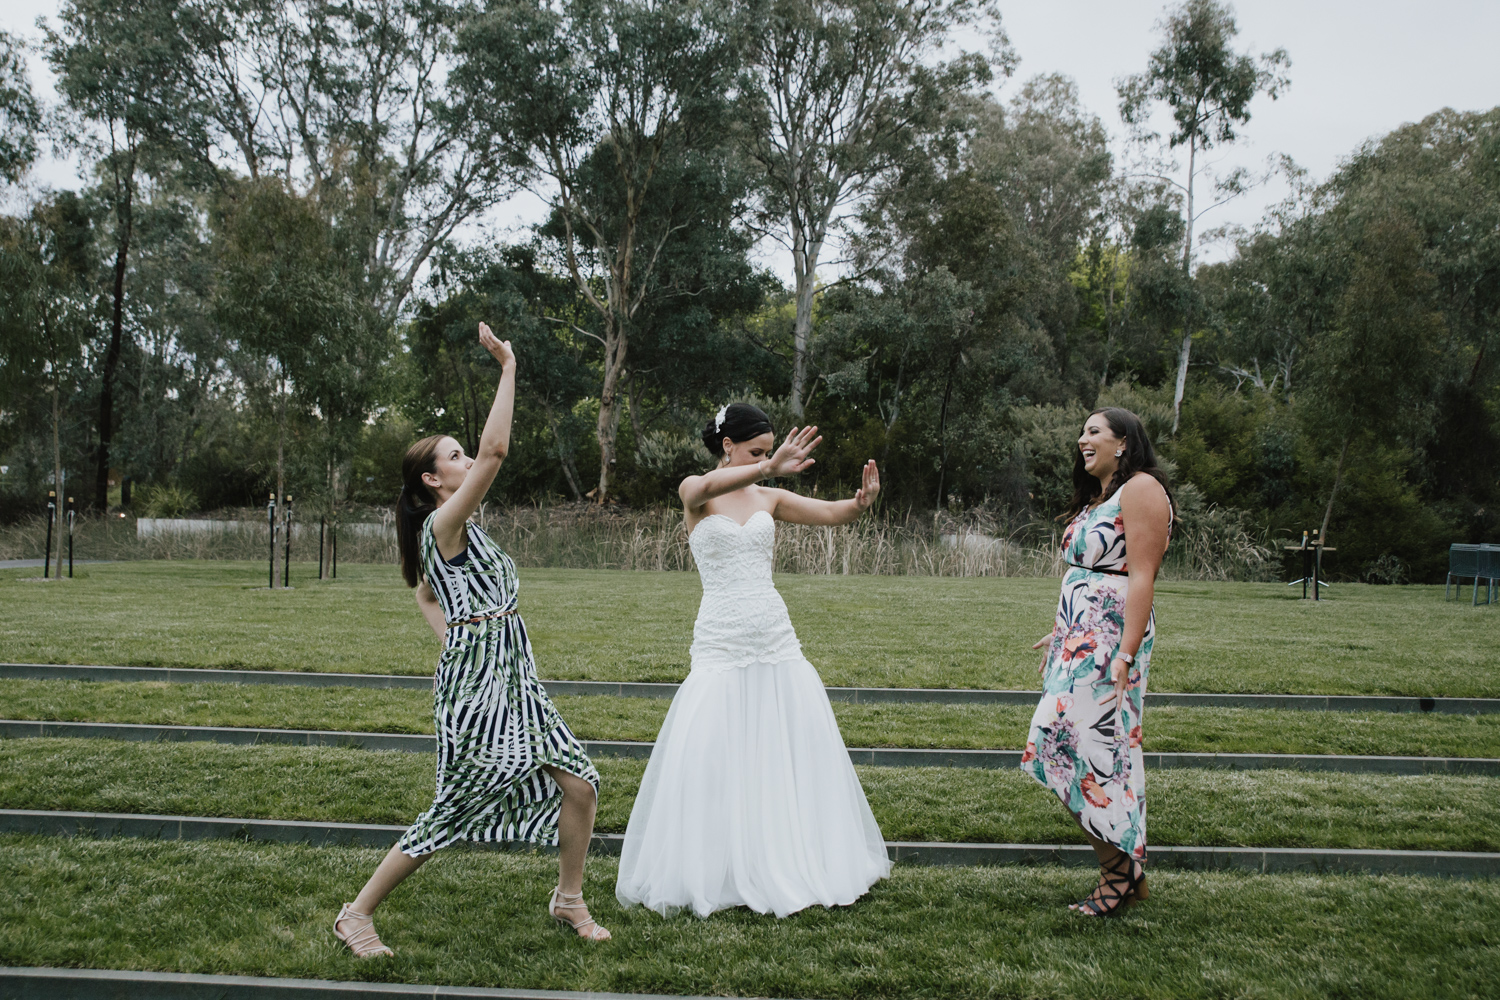 National Gallery of Australia wedding Canberra, photography by Jenny Wu Straight No Chaser